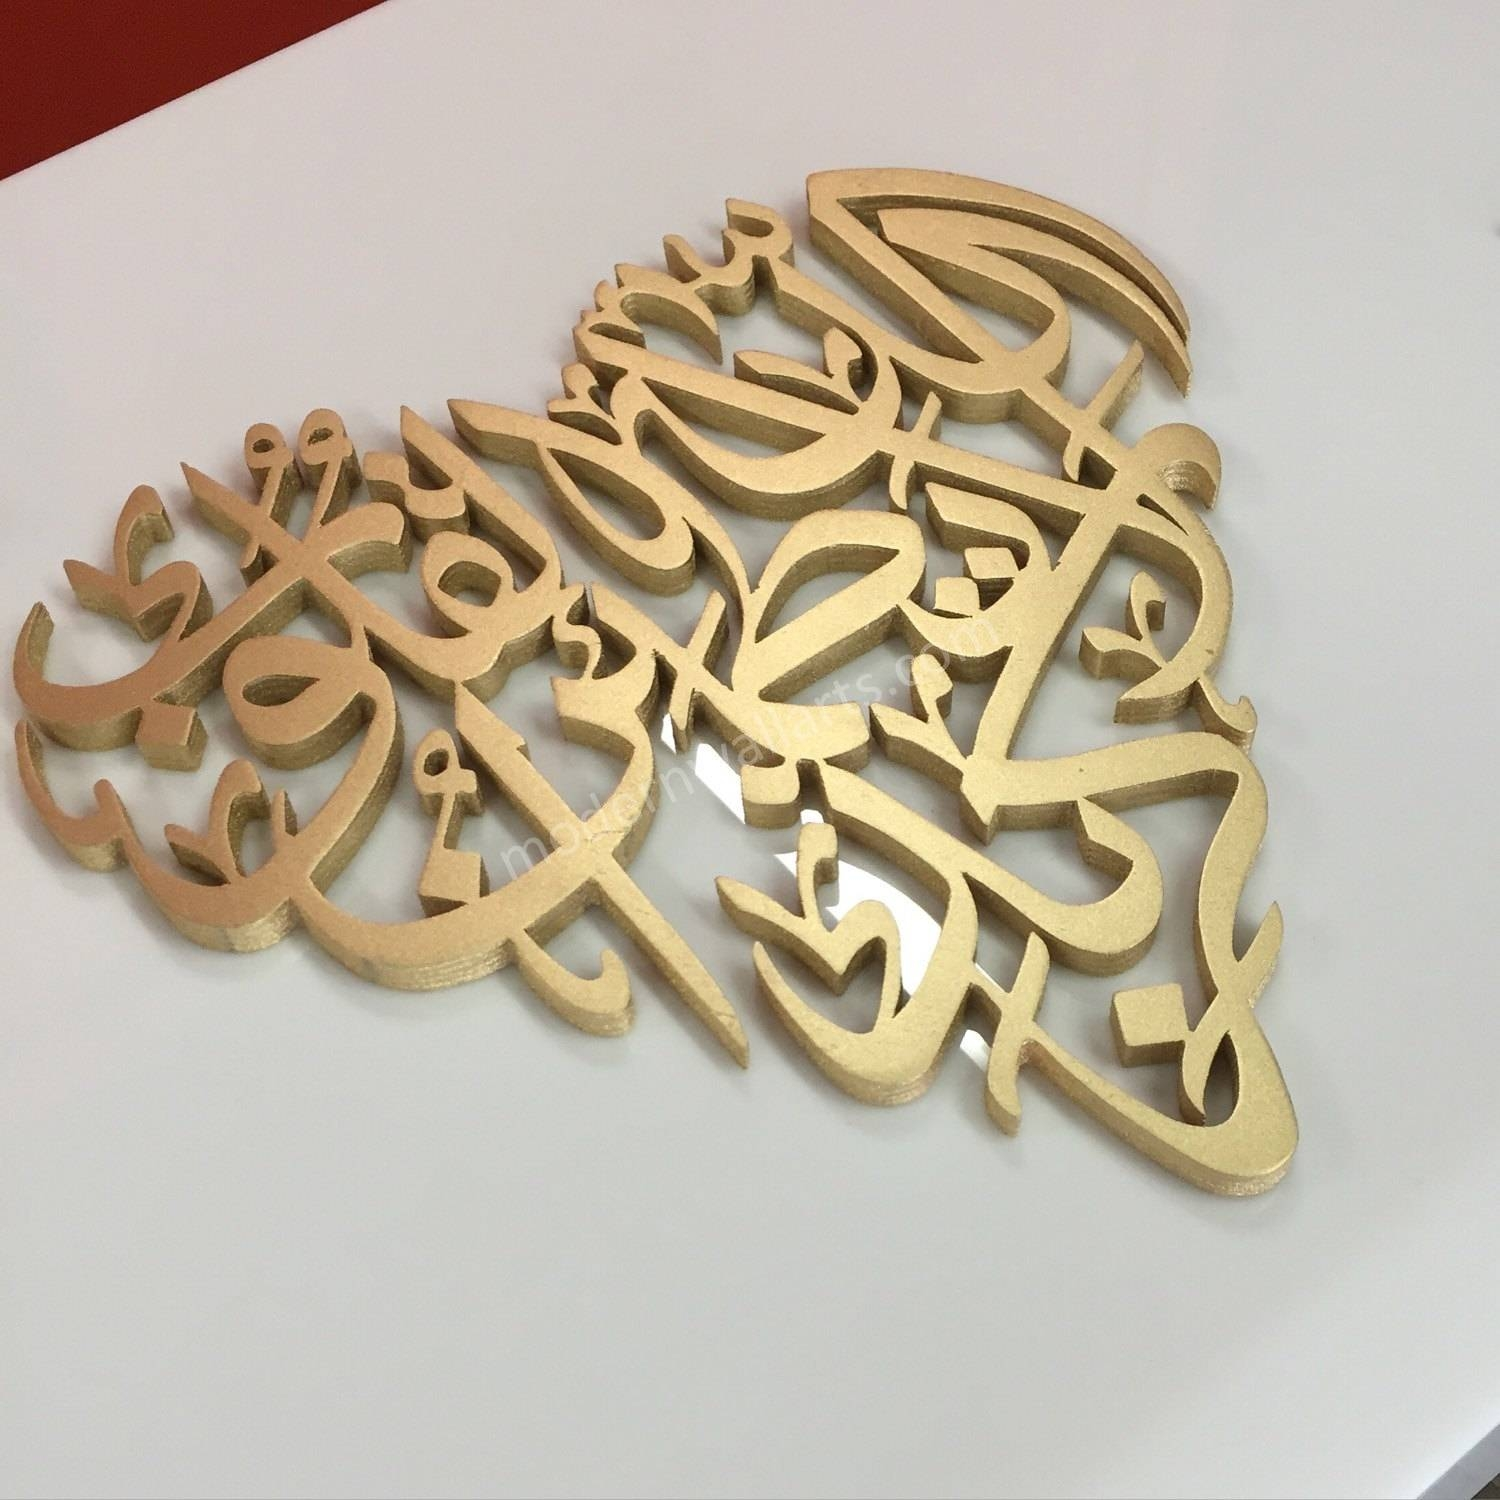 Islamic Heart Shape Table/wall Art – Modern Wall Arts With Most Up To Date Heart Shaped Metal Wall Art (View 3 of 20)